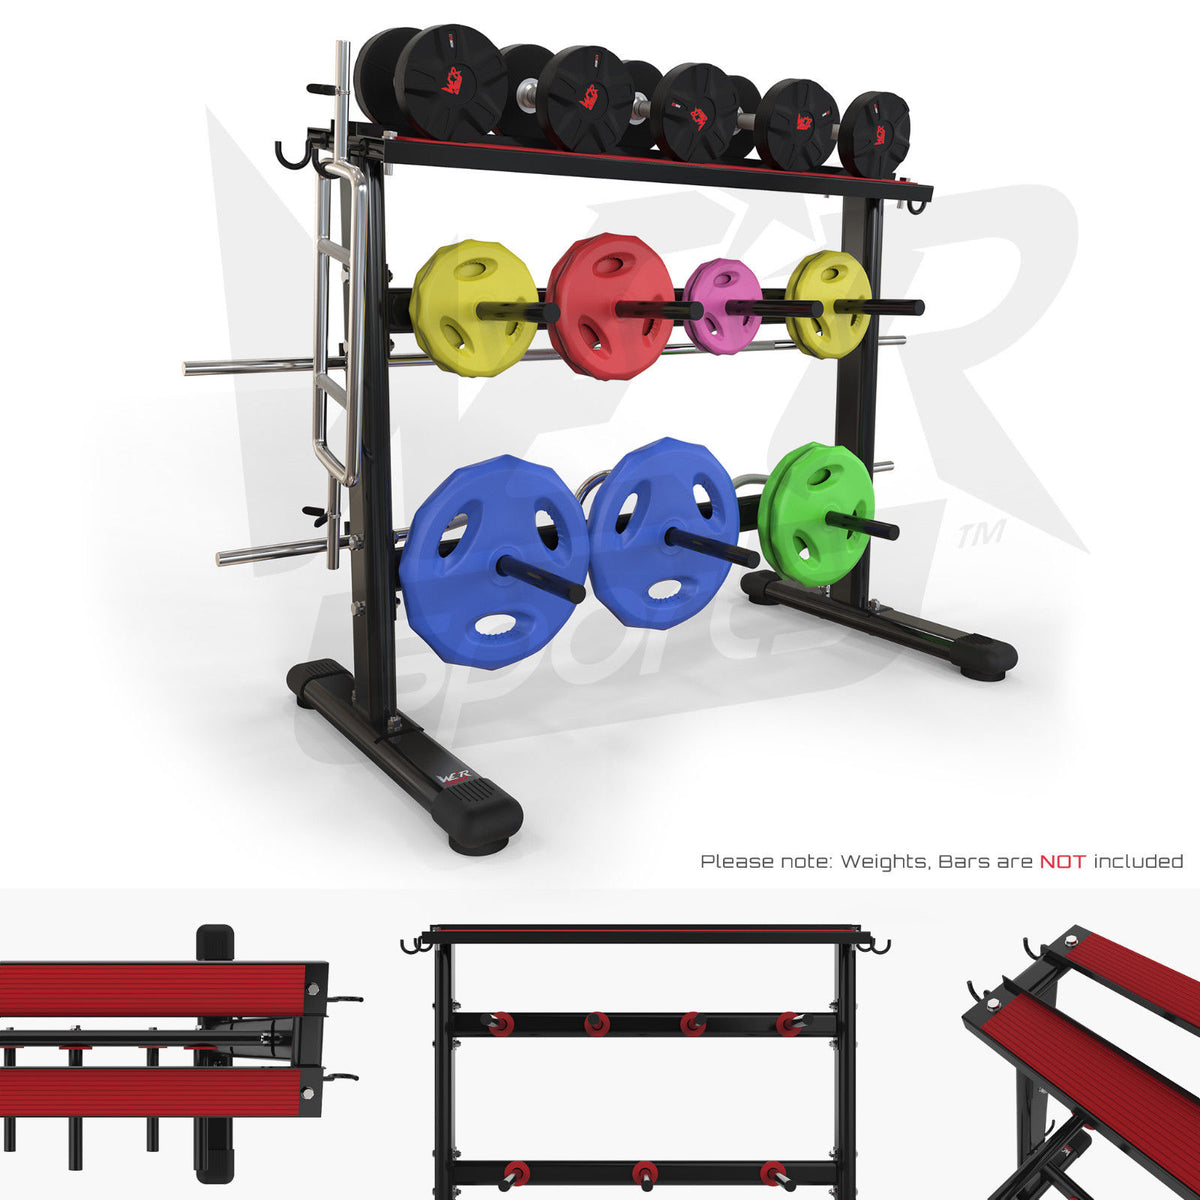 Storage Express Home: Dumbbell & Weight Plate Storage Rack Stand Holder Home Gym